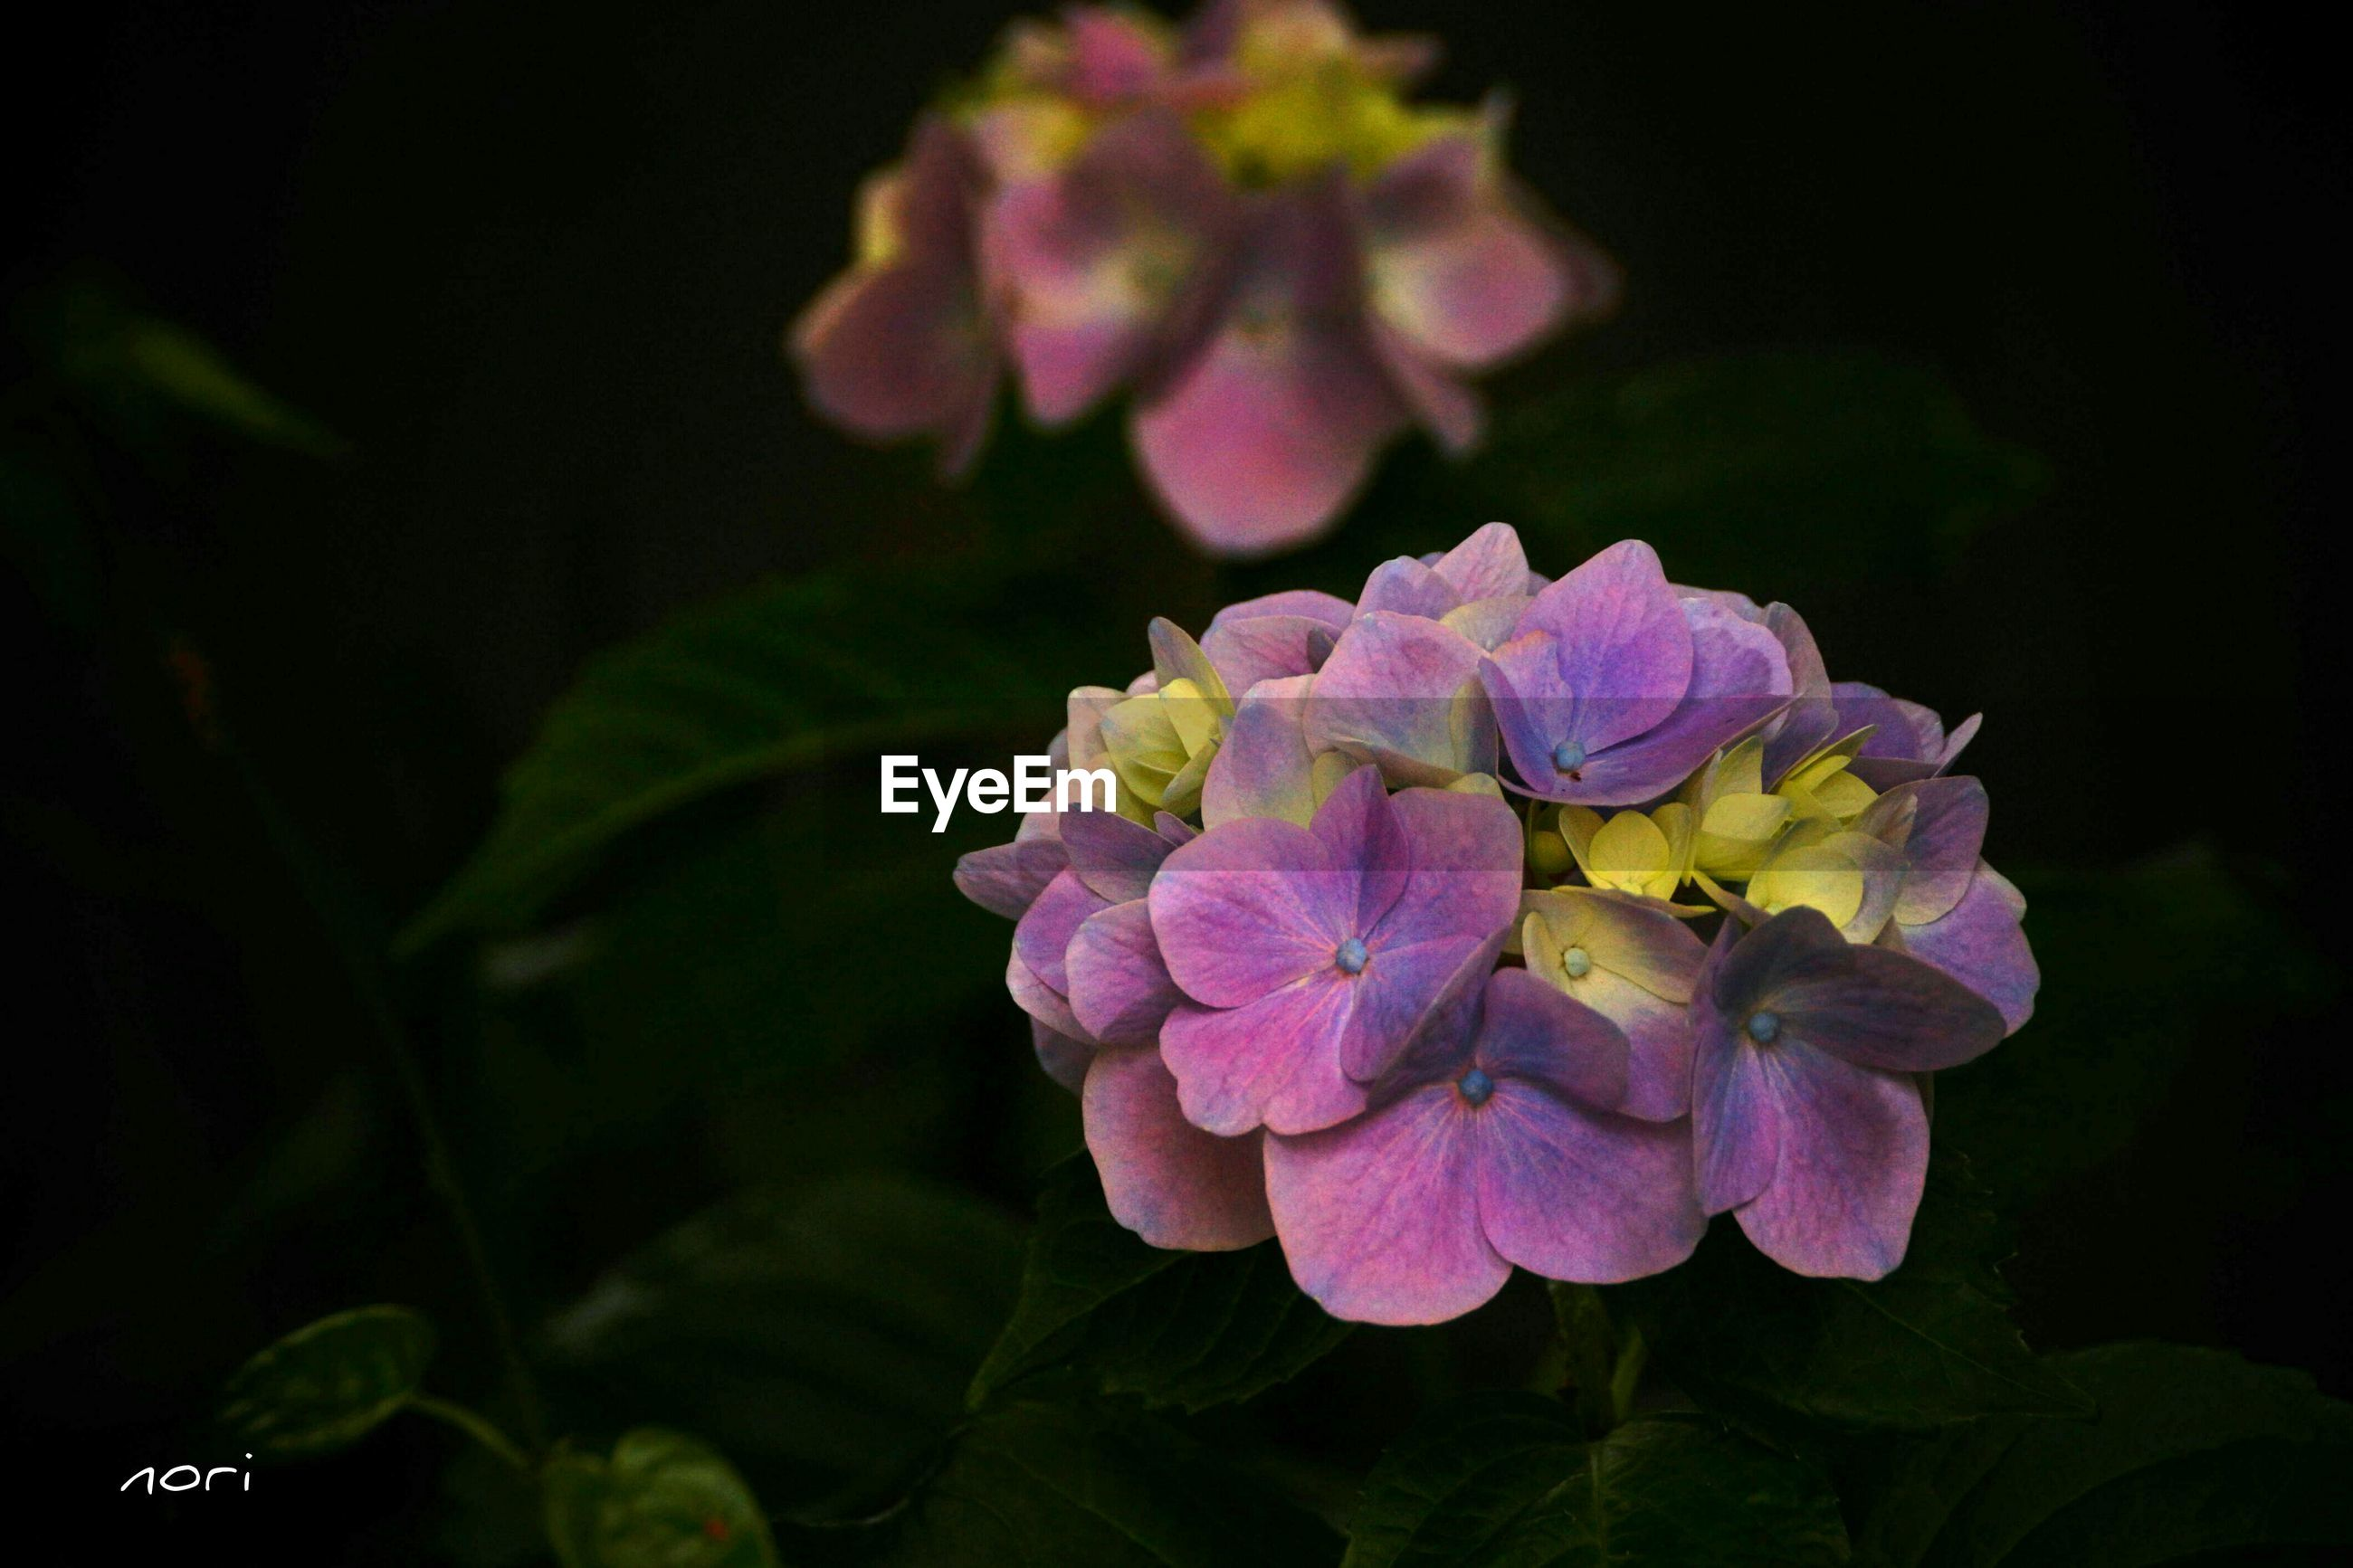 flower, petal, freshness, fragility, flower head, beauty in nature, growth, close-up, blooming, nature, plant, night, focus on foreground, in bloom, purple, leaf, pink color, blossom, park - man made space, no people